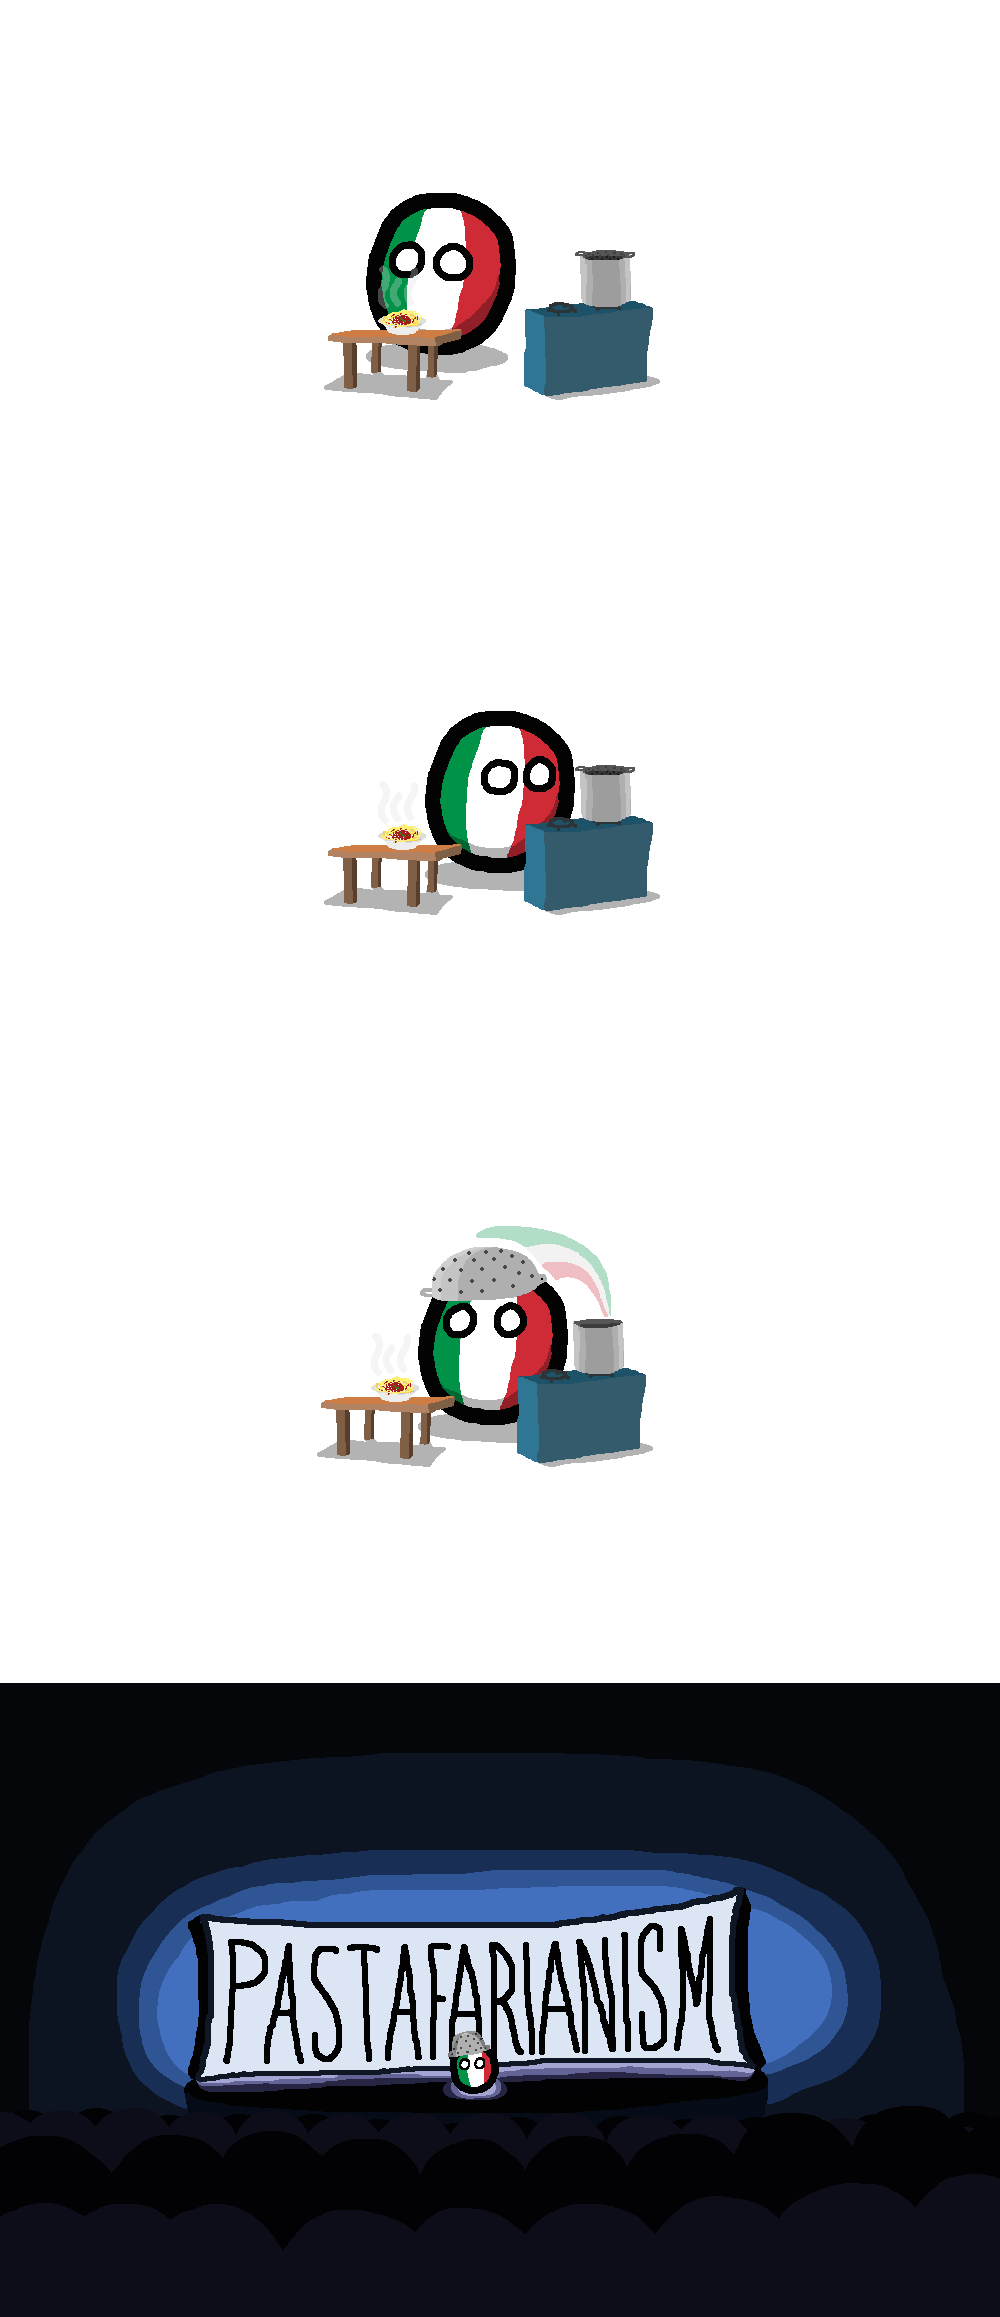 t3_7b7vdp.png